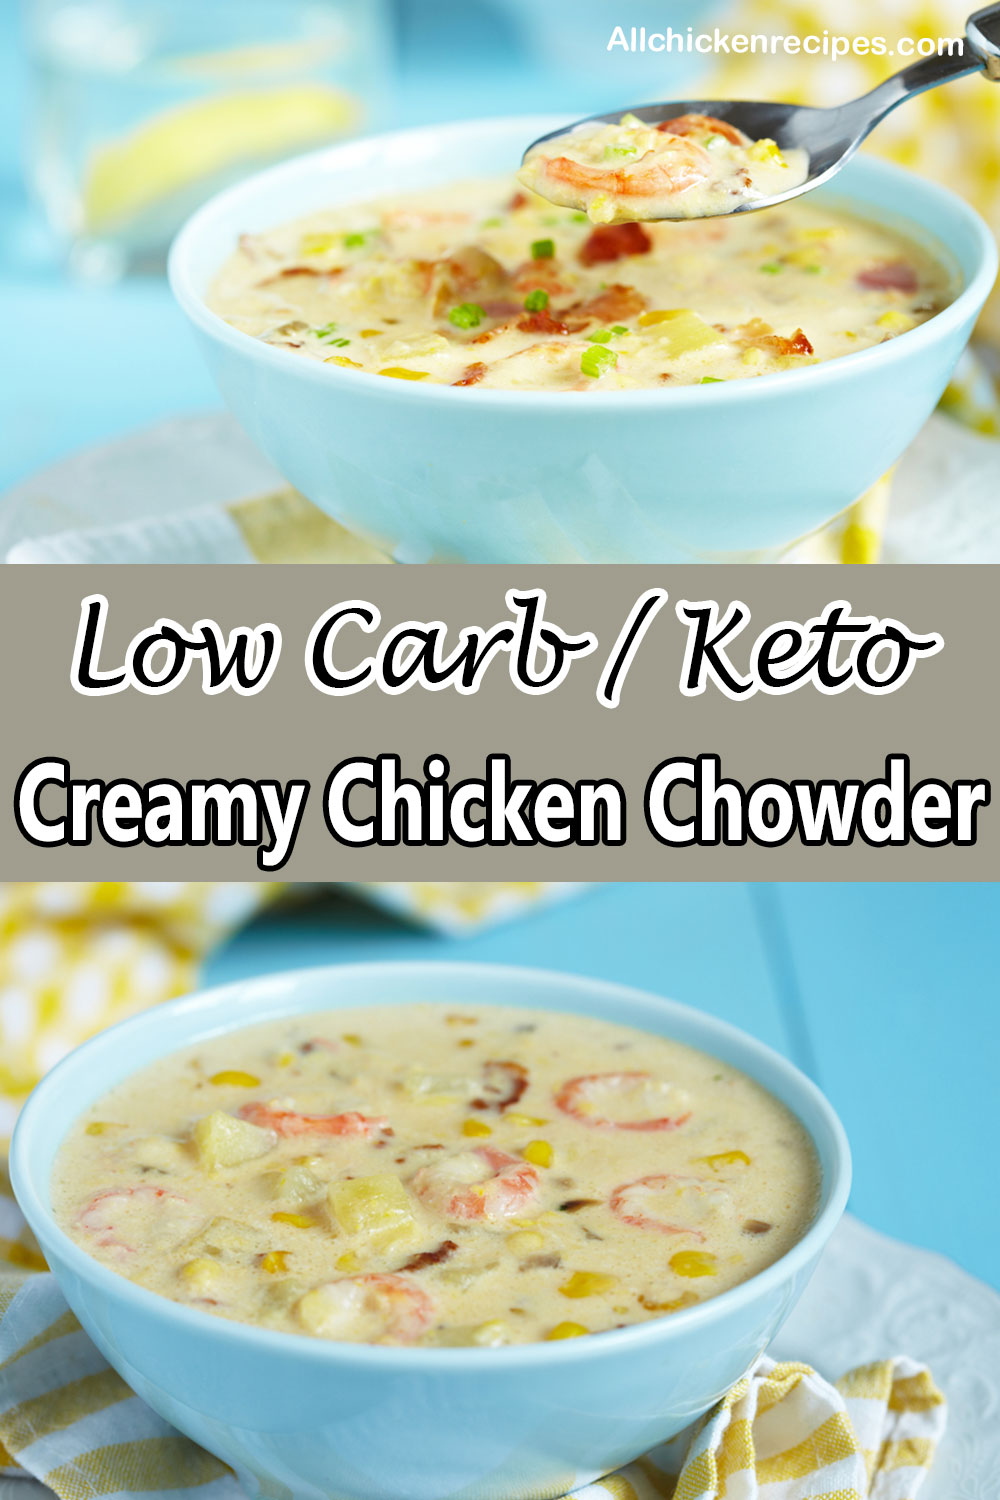 Low Carb Keto Chicken Chowder